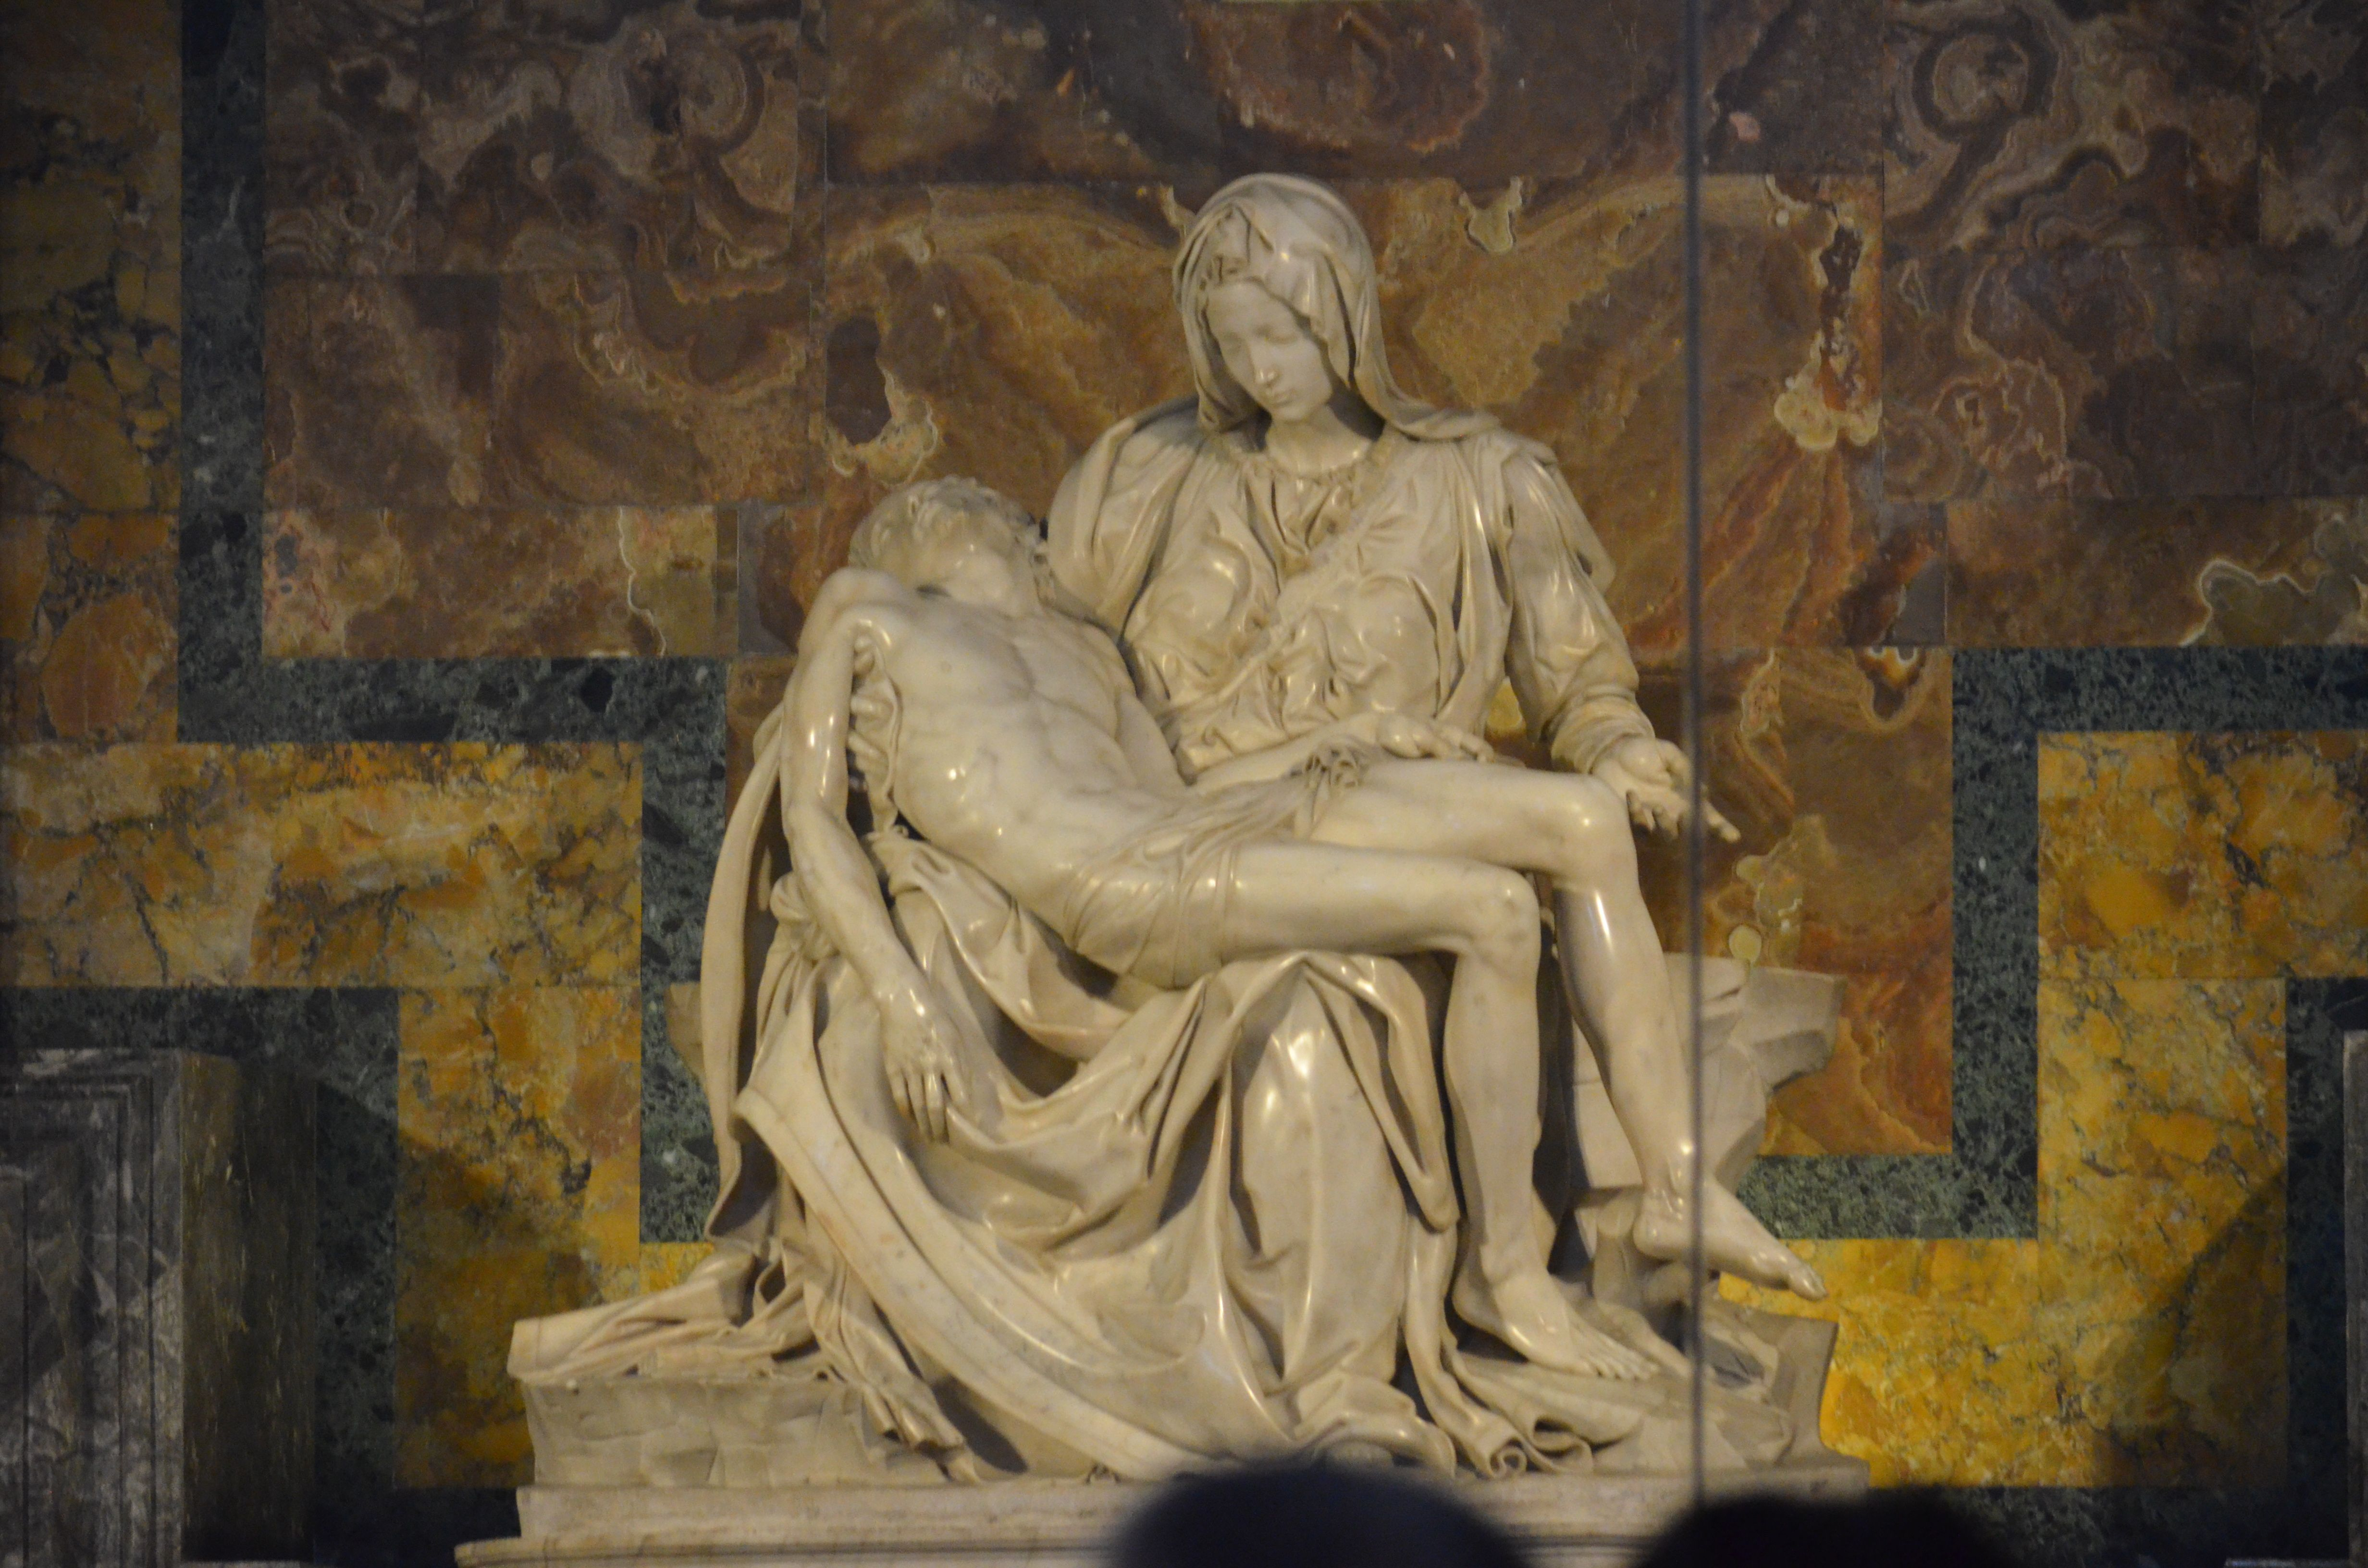 The Pieta, St. Peter's Basilica, Rome (With images